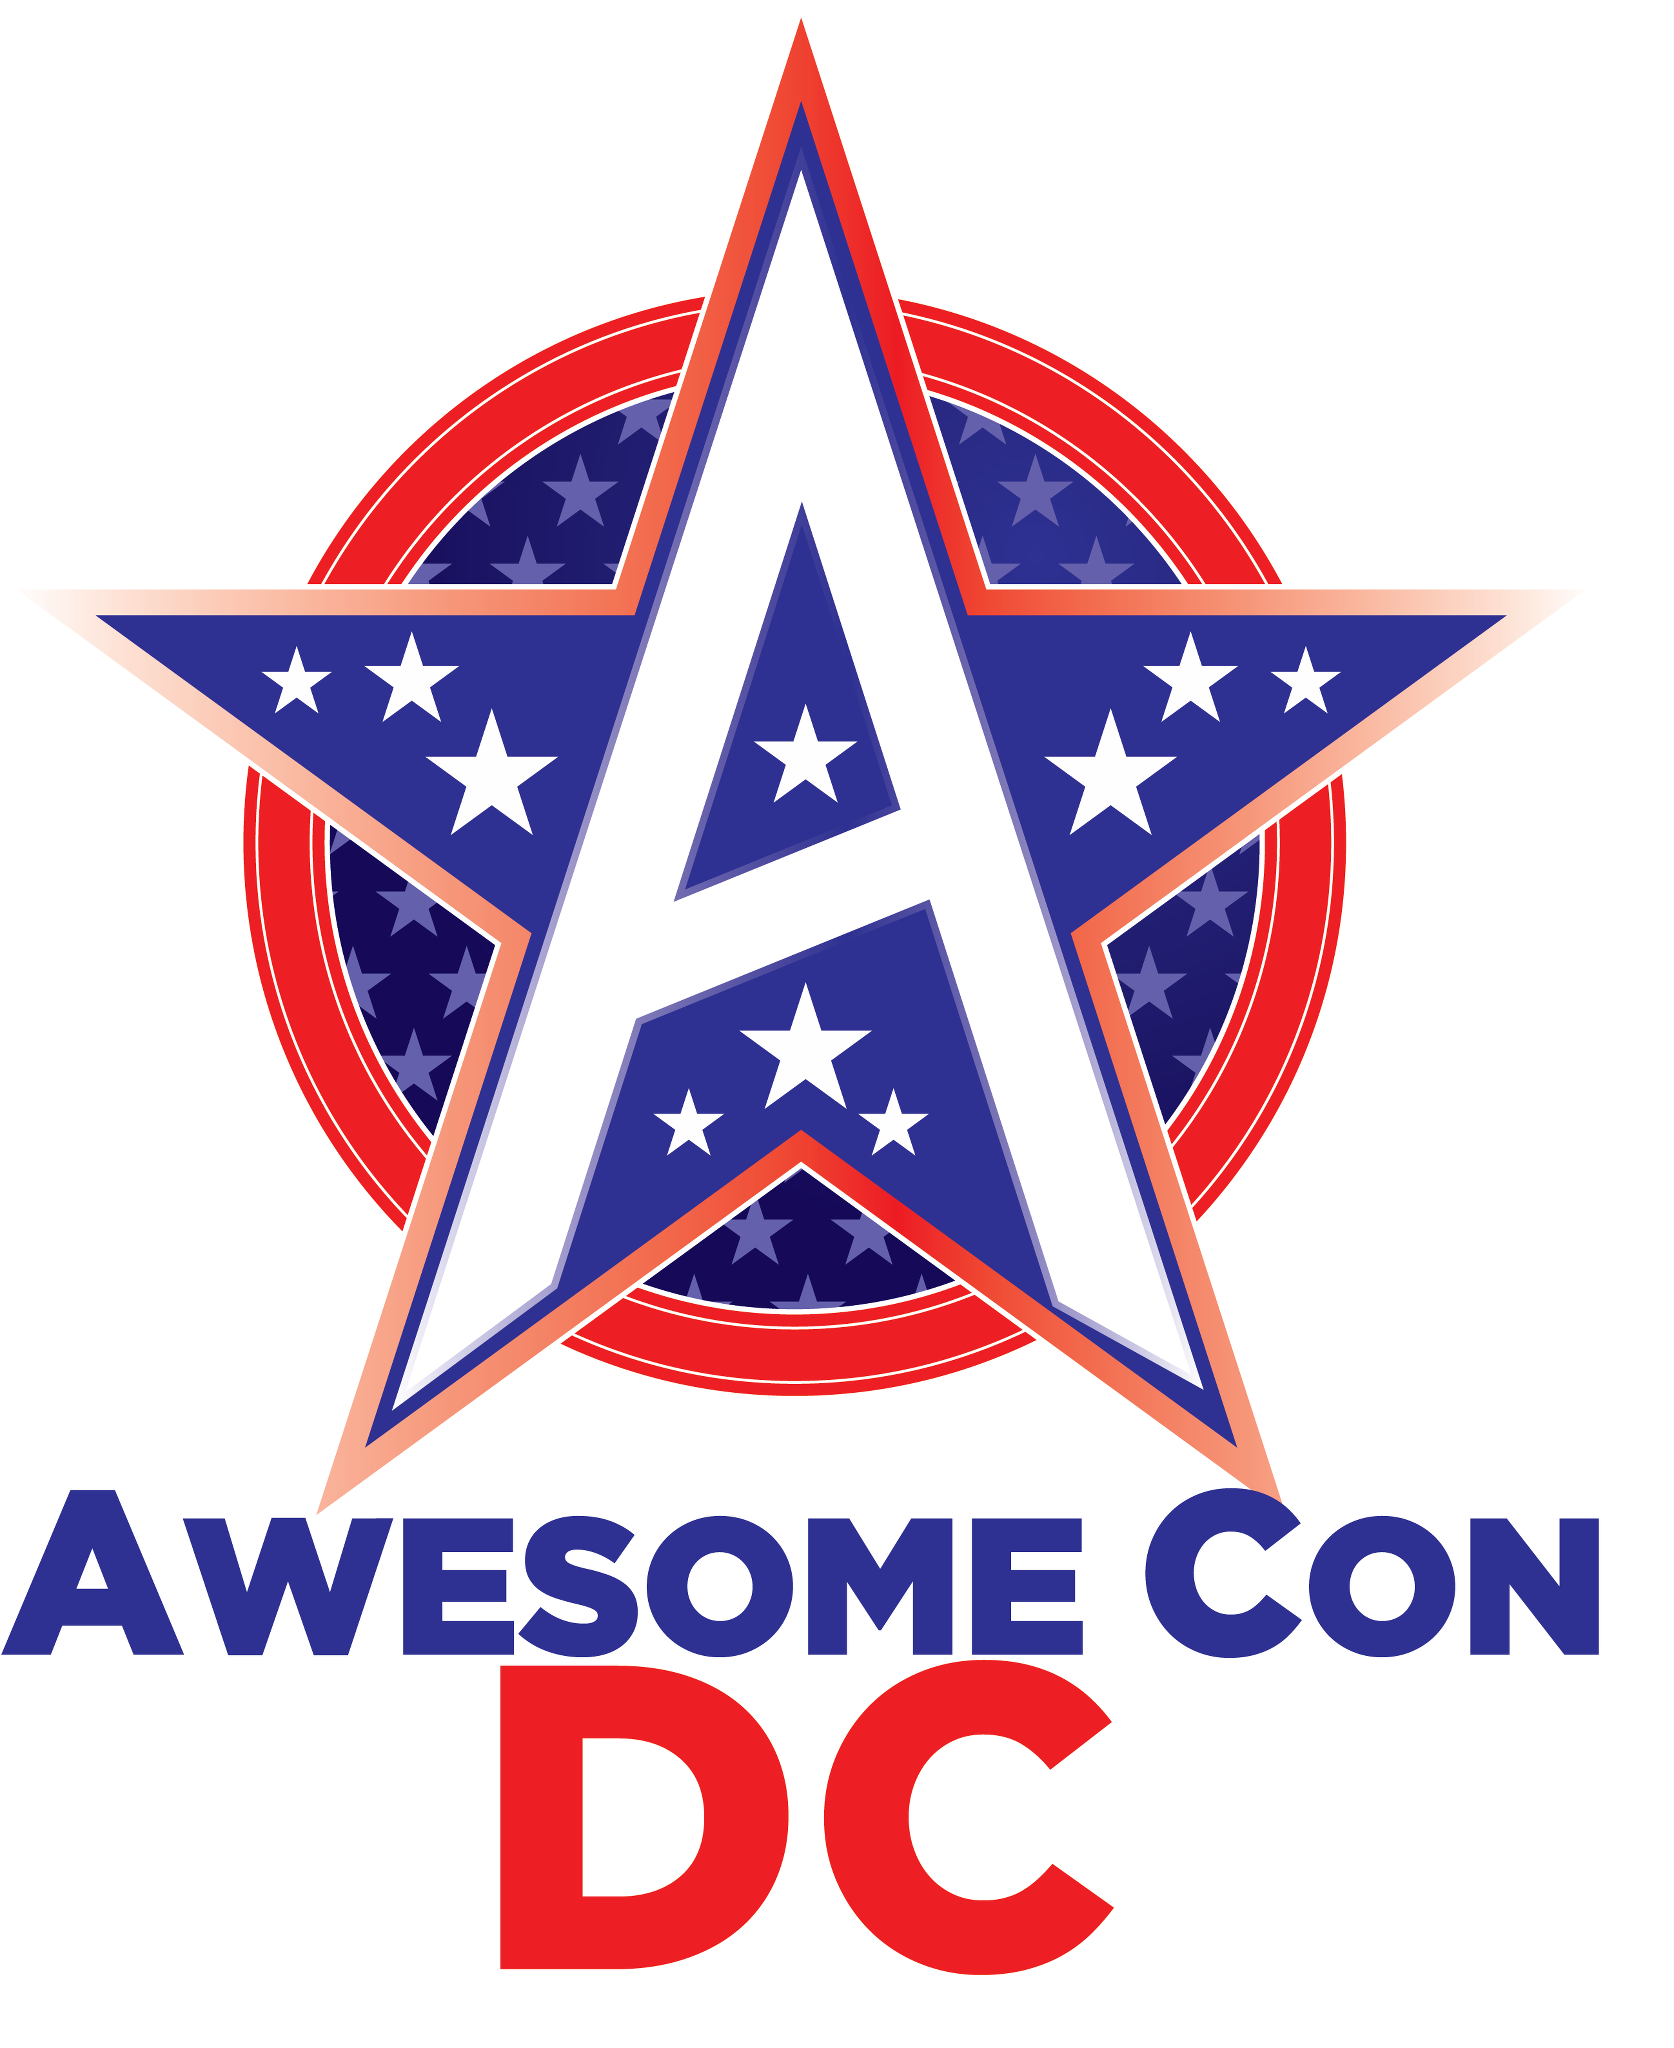 AwesomeConLogo